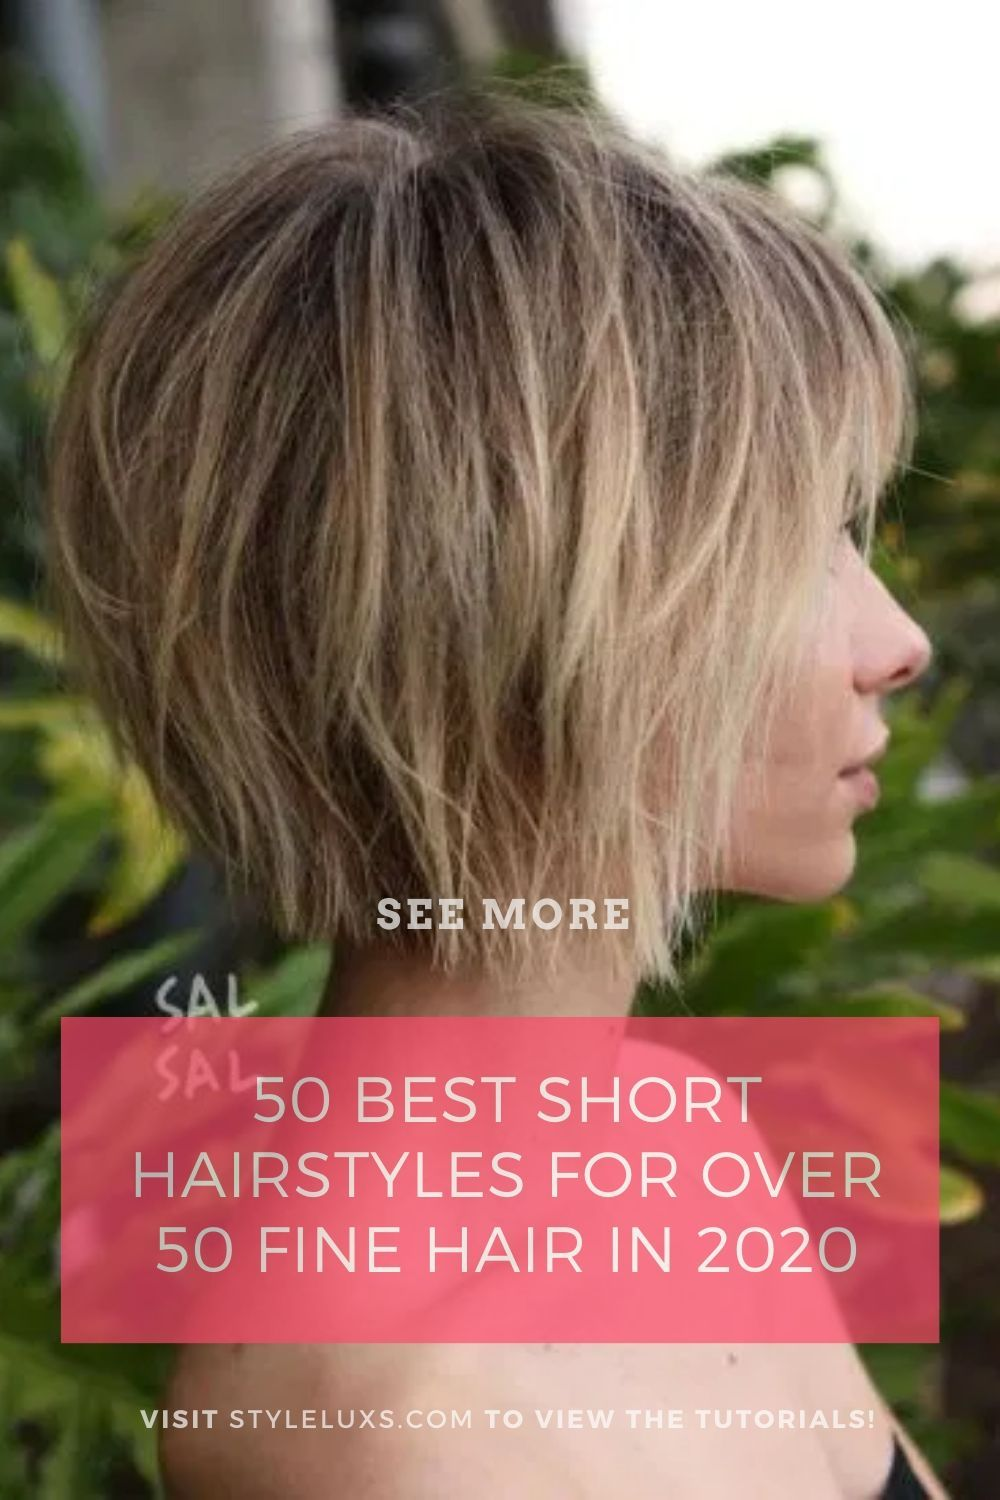 50 Best Short Hairstyles For Over 50 Fine Hair In 2020 In 2020 Short Hair Styles Hair Styles Hairstyles Over 50